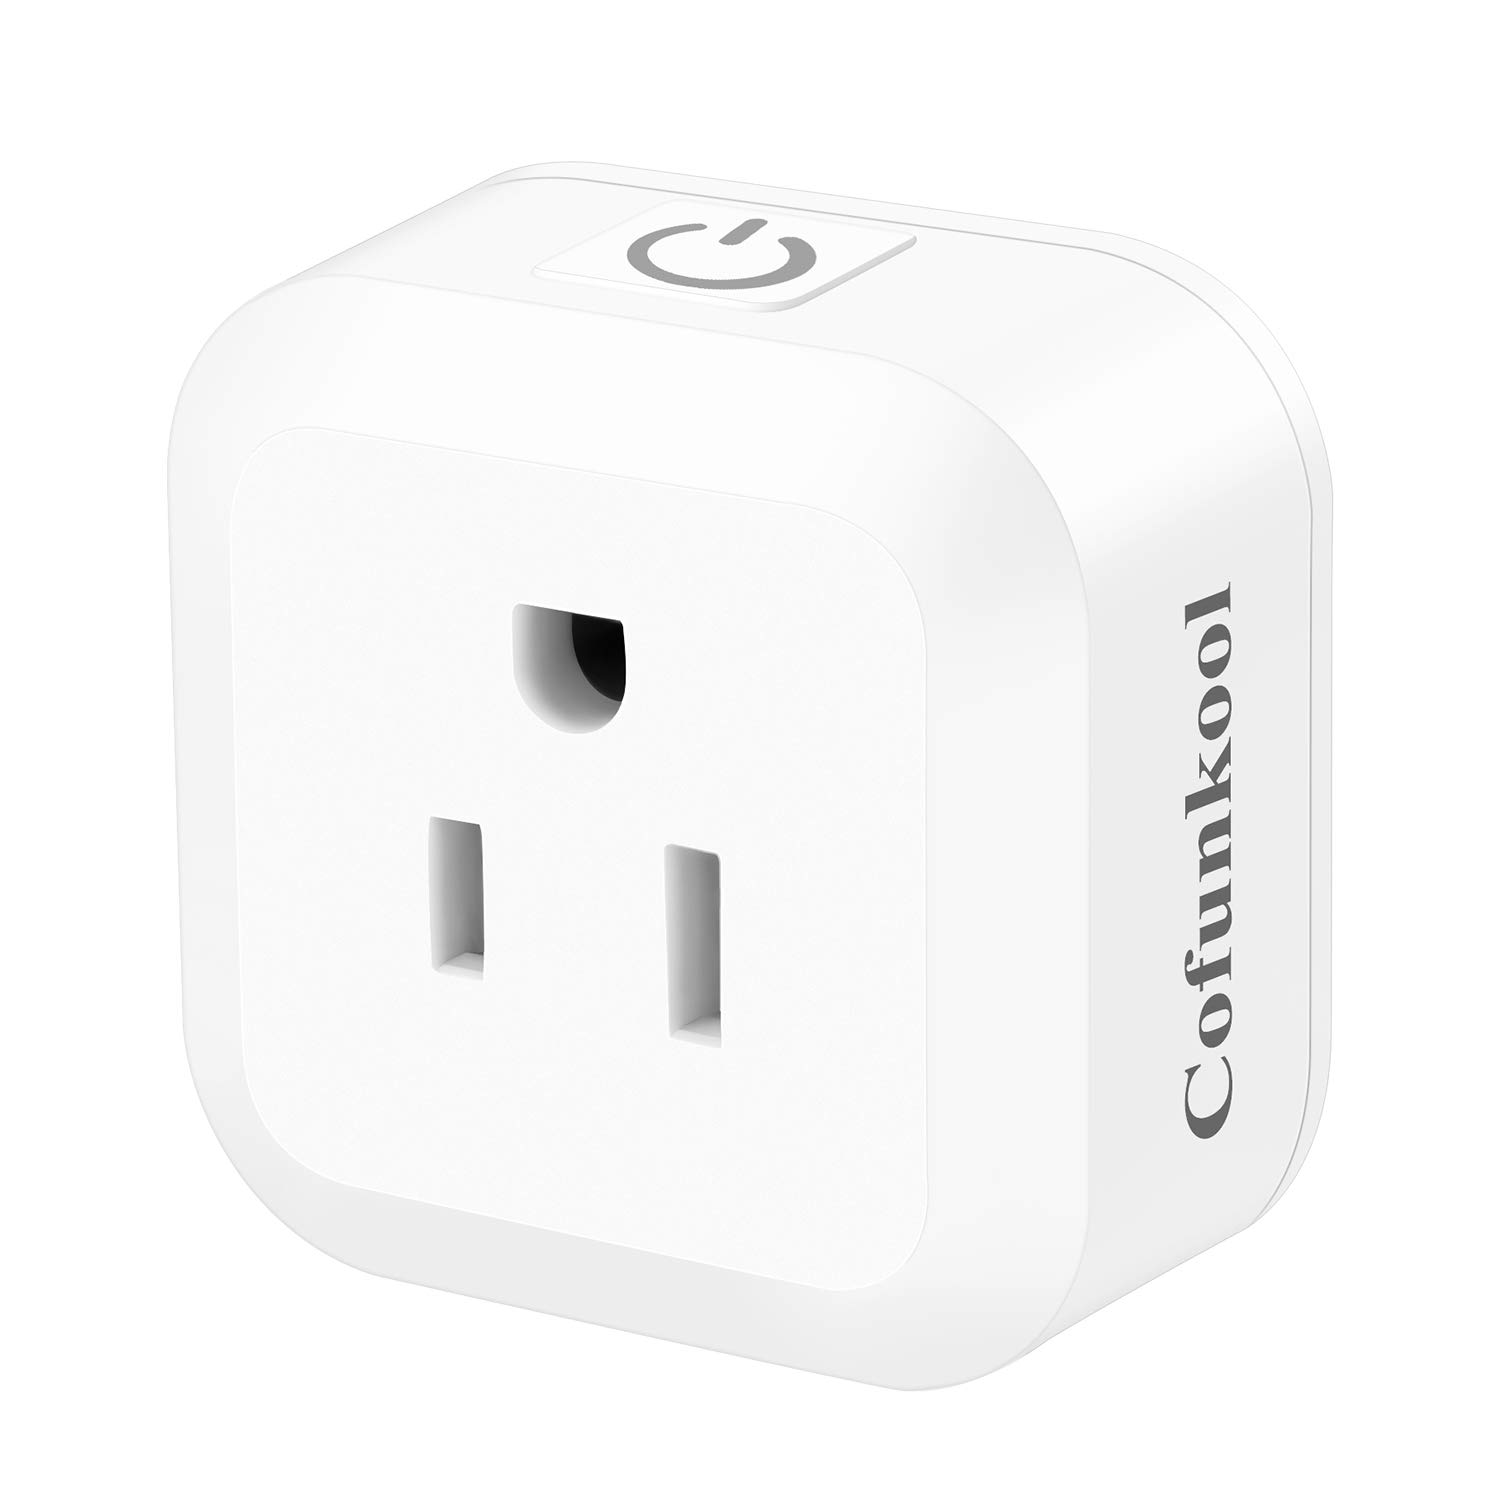 CofunKool Smart WiFi Plug Outlet Intelligent Mini Socket No Hub Required Remote Control Your Devices from Anywhere Work with Alexa and Google Home